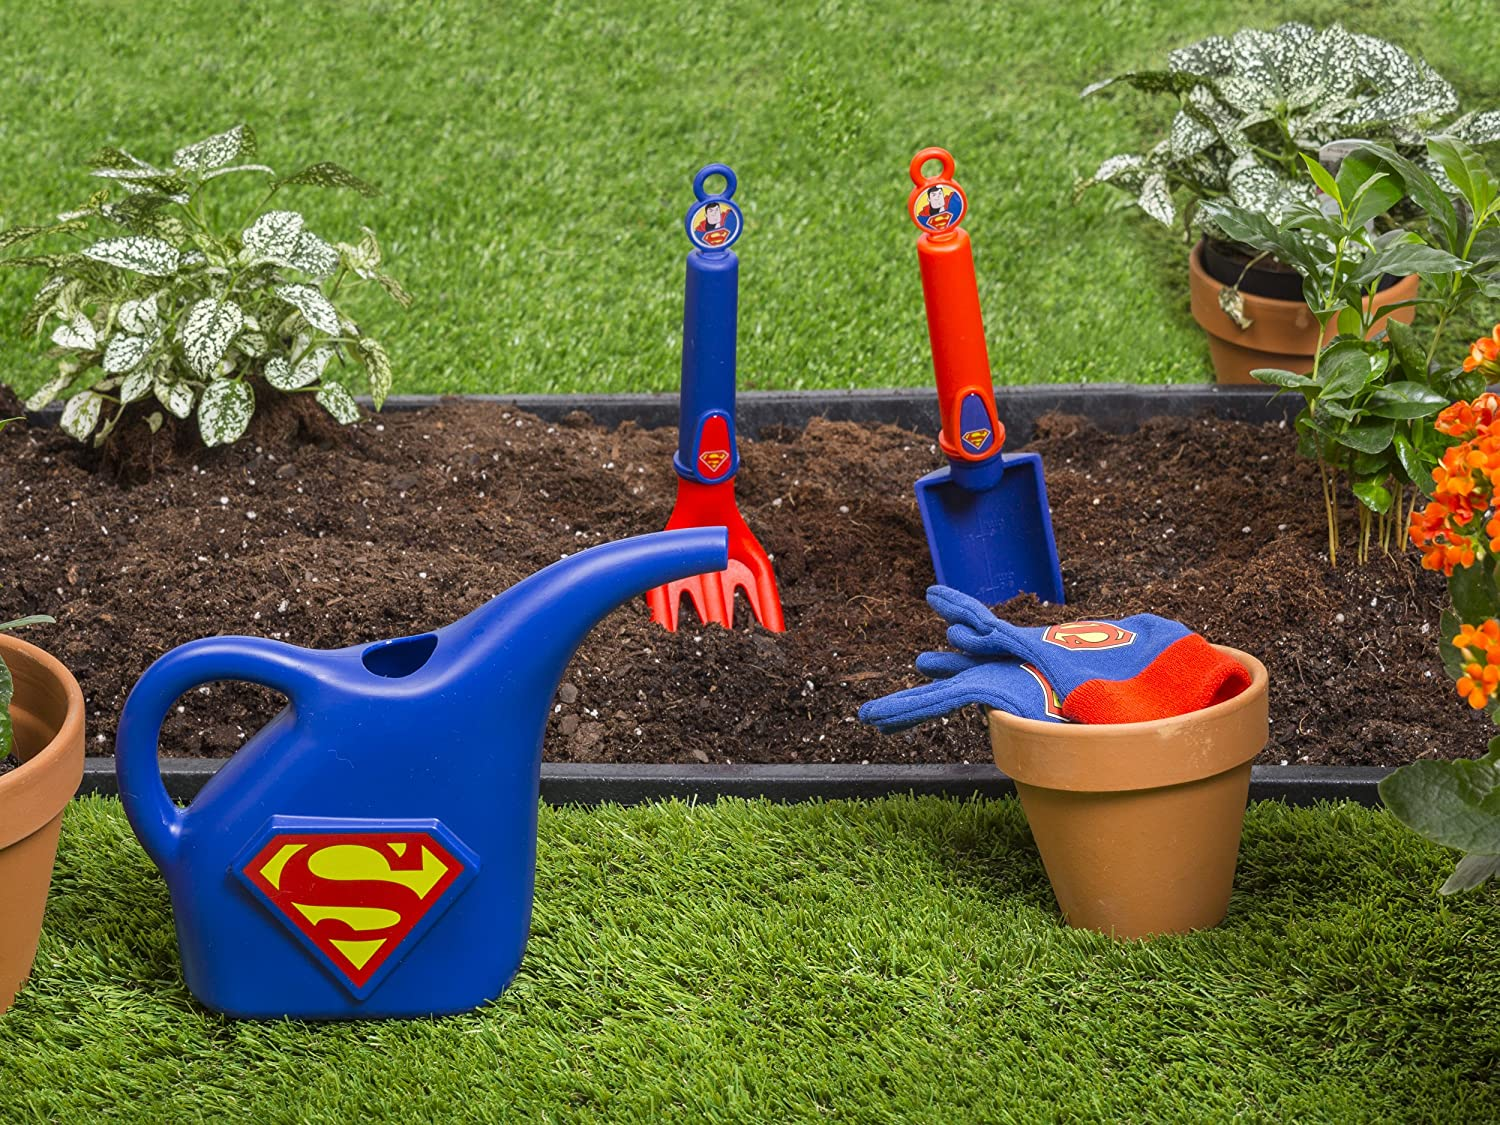 Gardening Kits for Toddlers and Kids